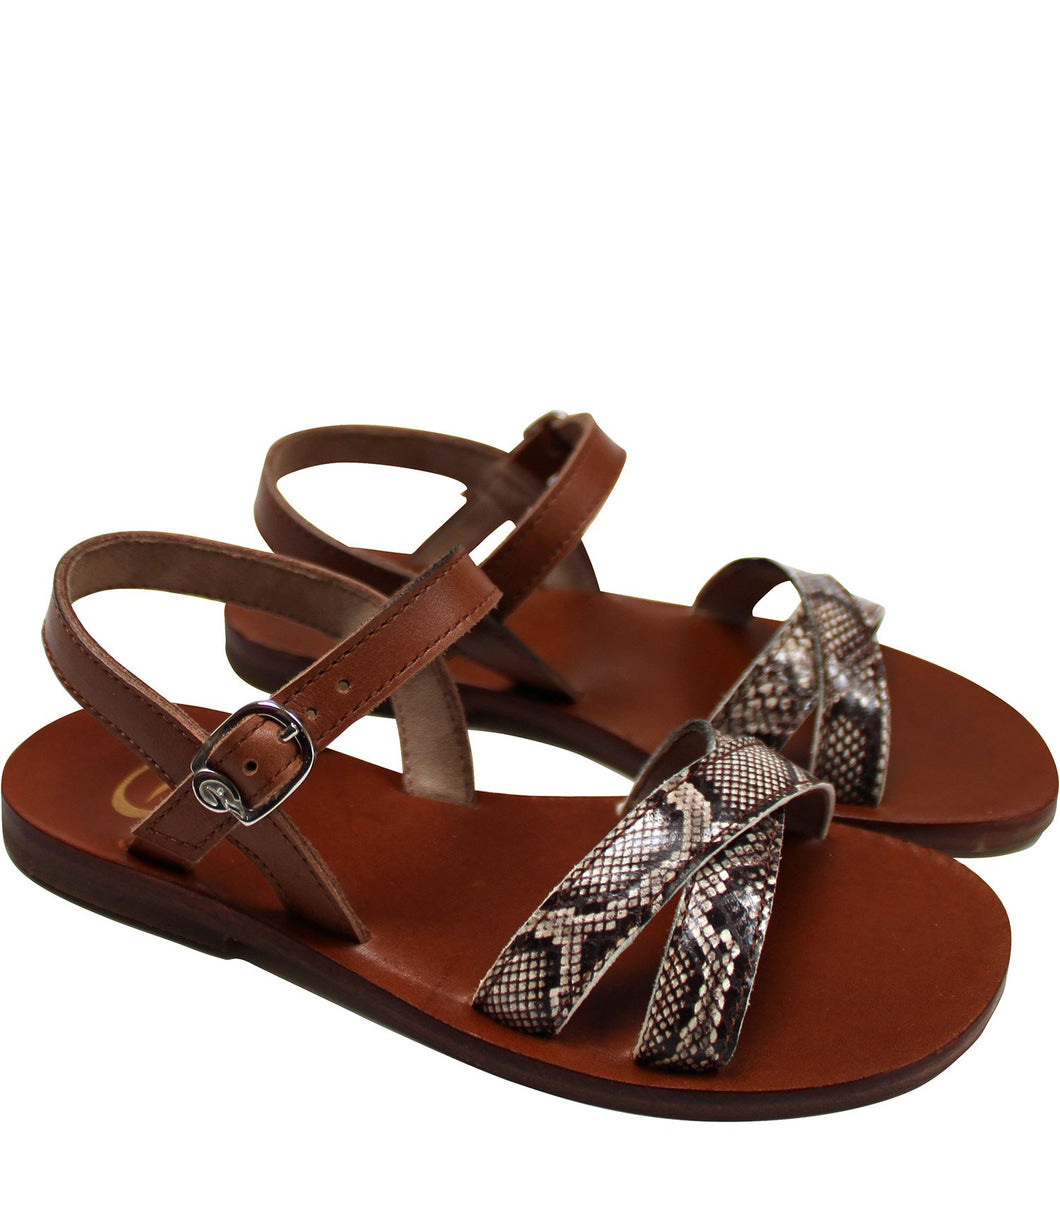 Brown leather sandals in snake print